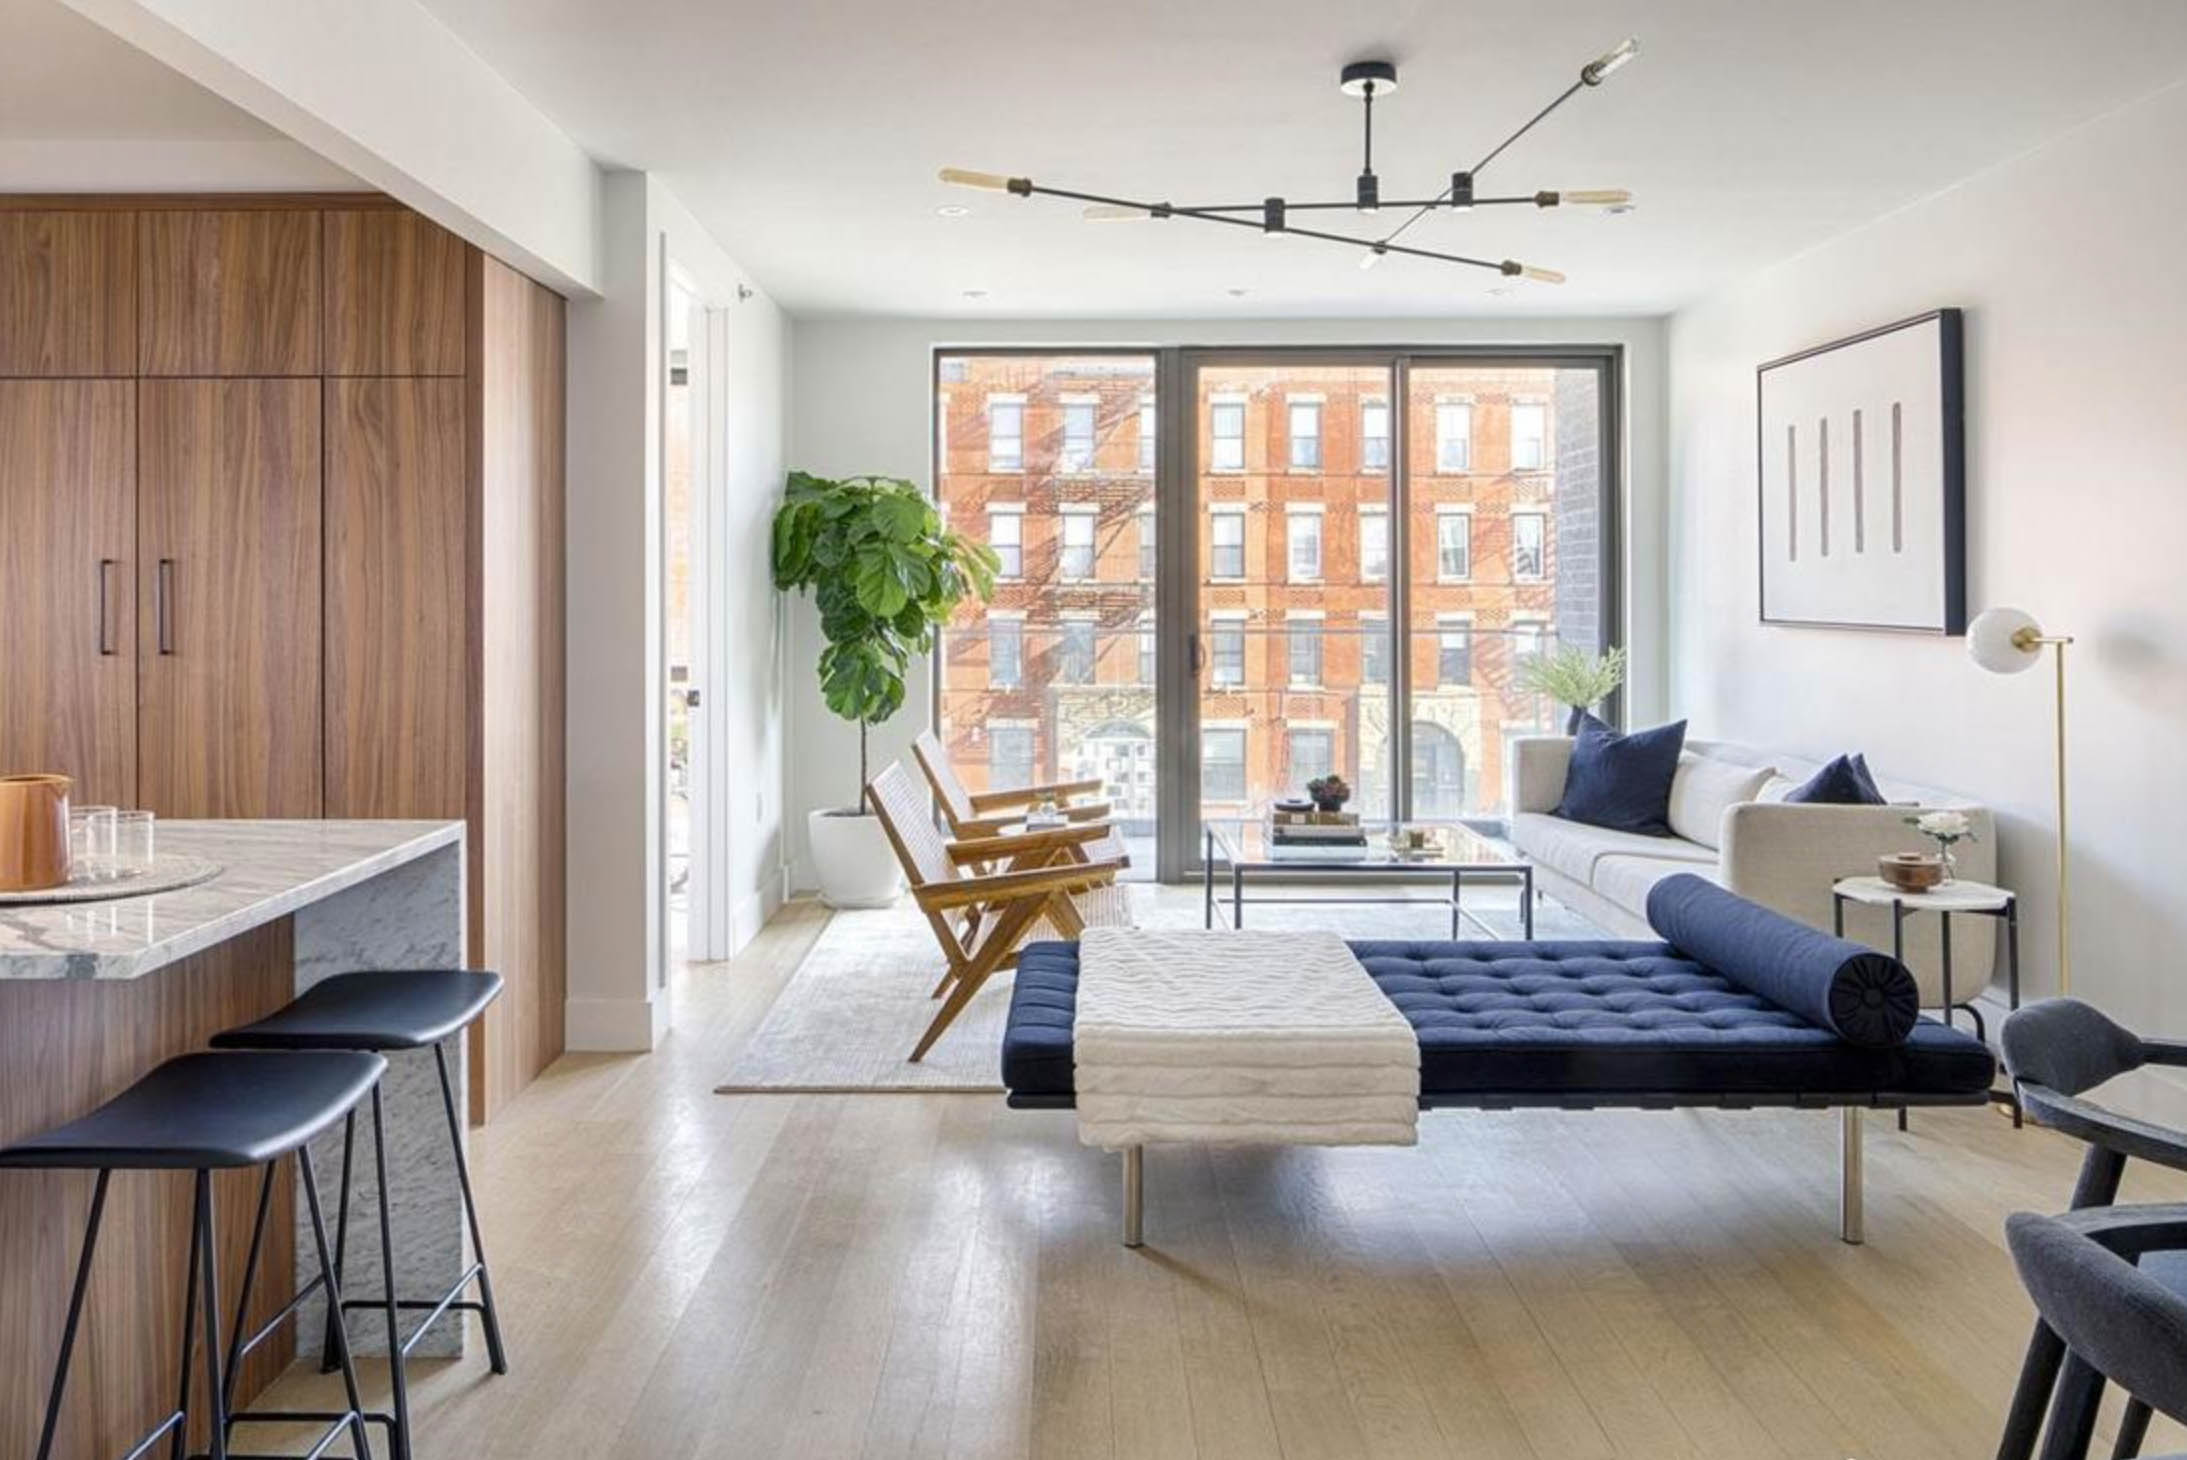 488 Fourth Ave #4 - Park Slope | Brooklyn    3 Bedroom // 2 Bath In Contract List Price:    $1,595,000*